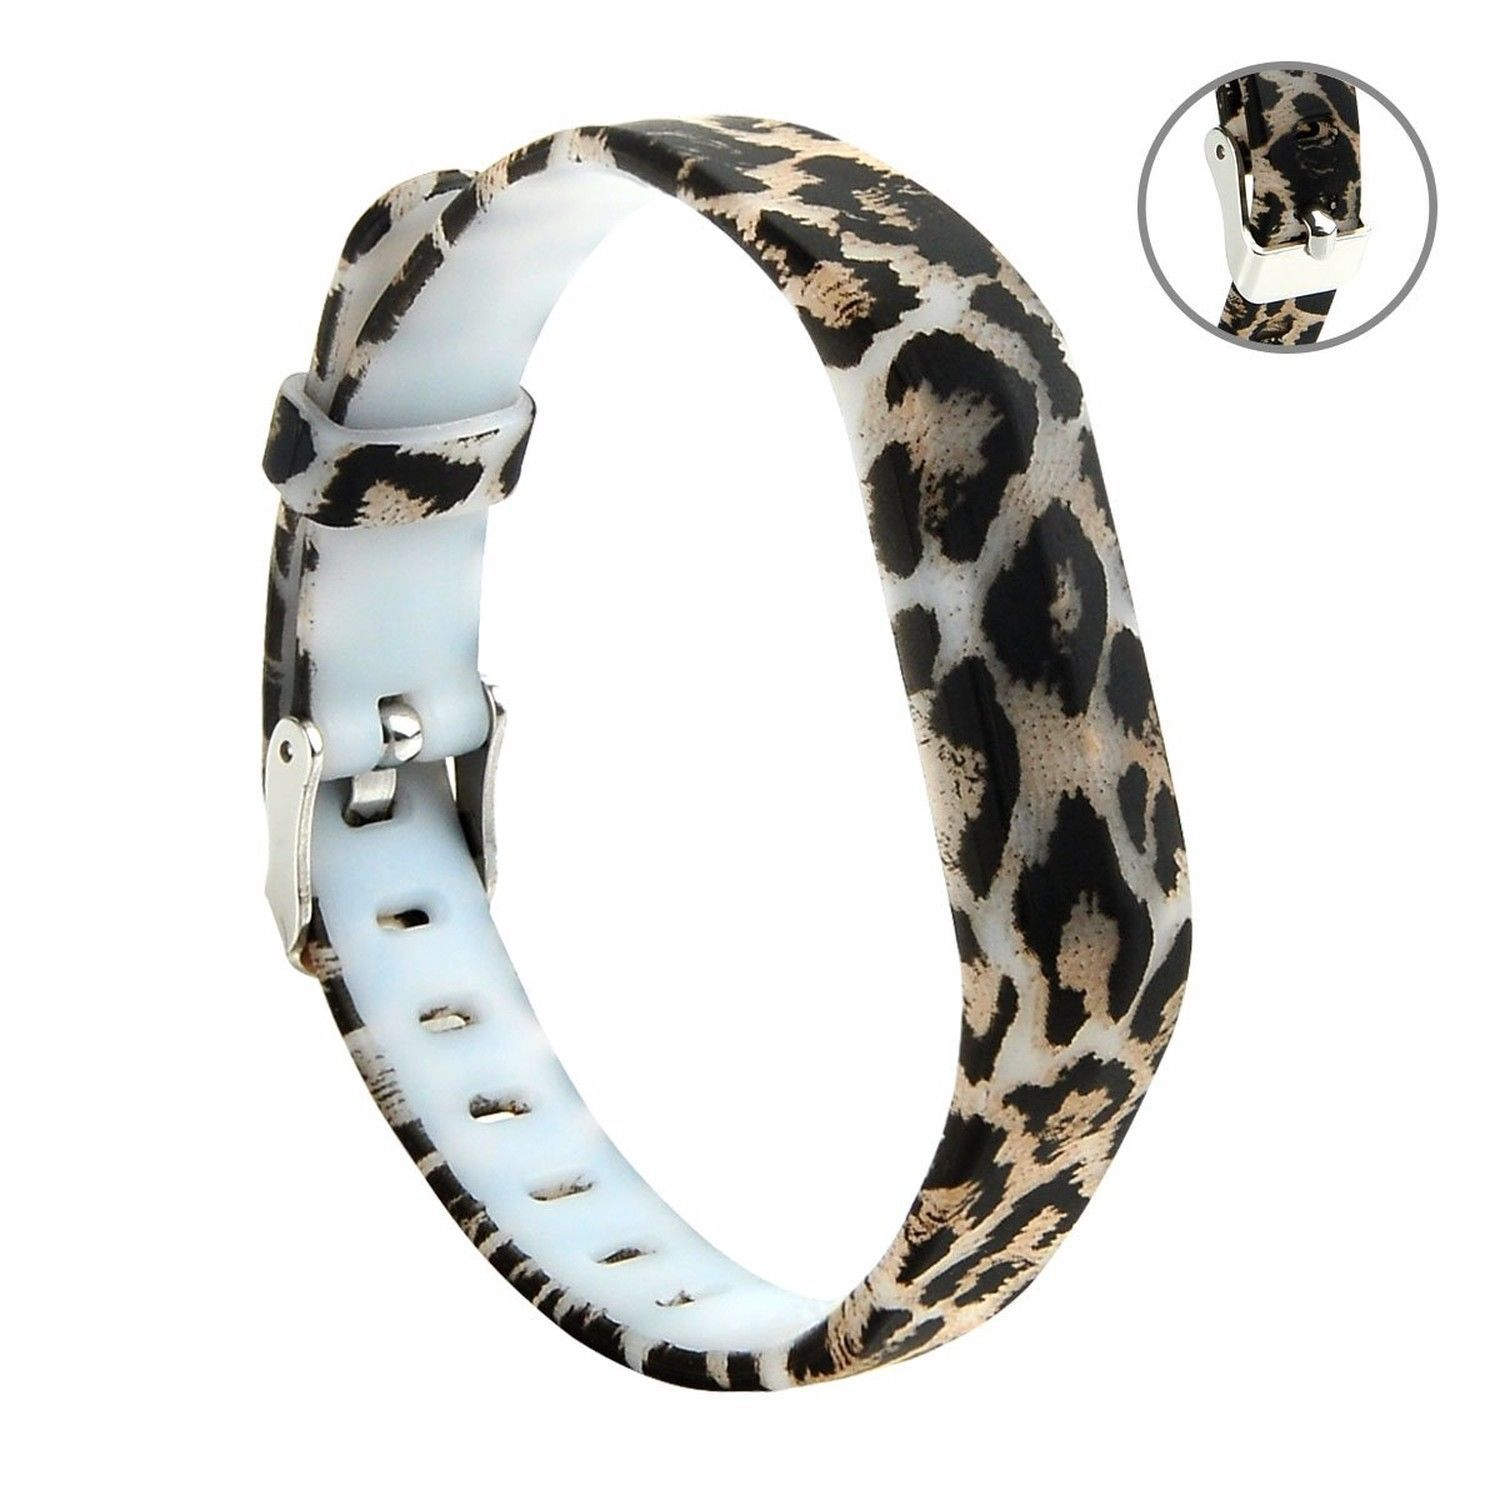 Leaping Leopard Wristband Band Strap Bracelet Accessories For Fitbit Flex 2 Ebay Accessories Bracelets Accessories Wristband